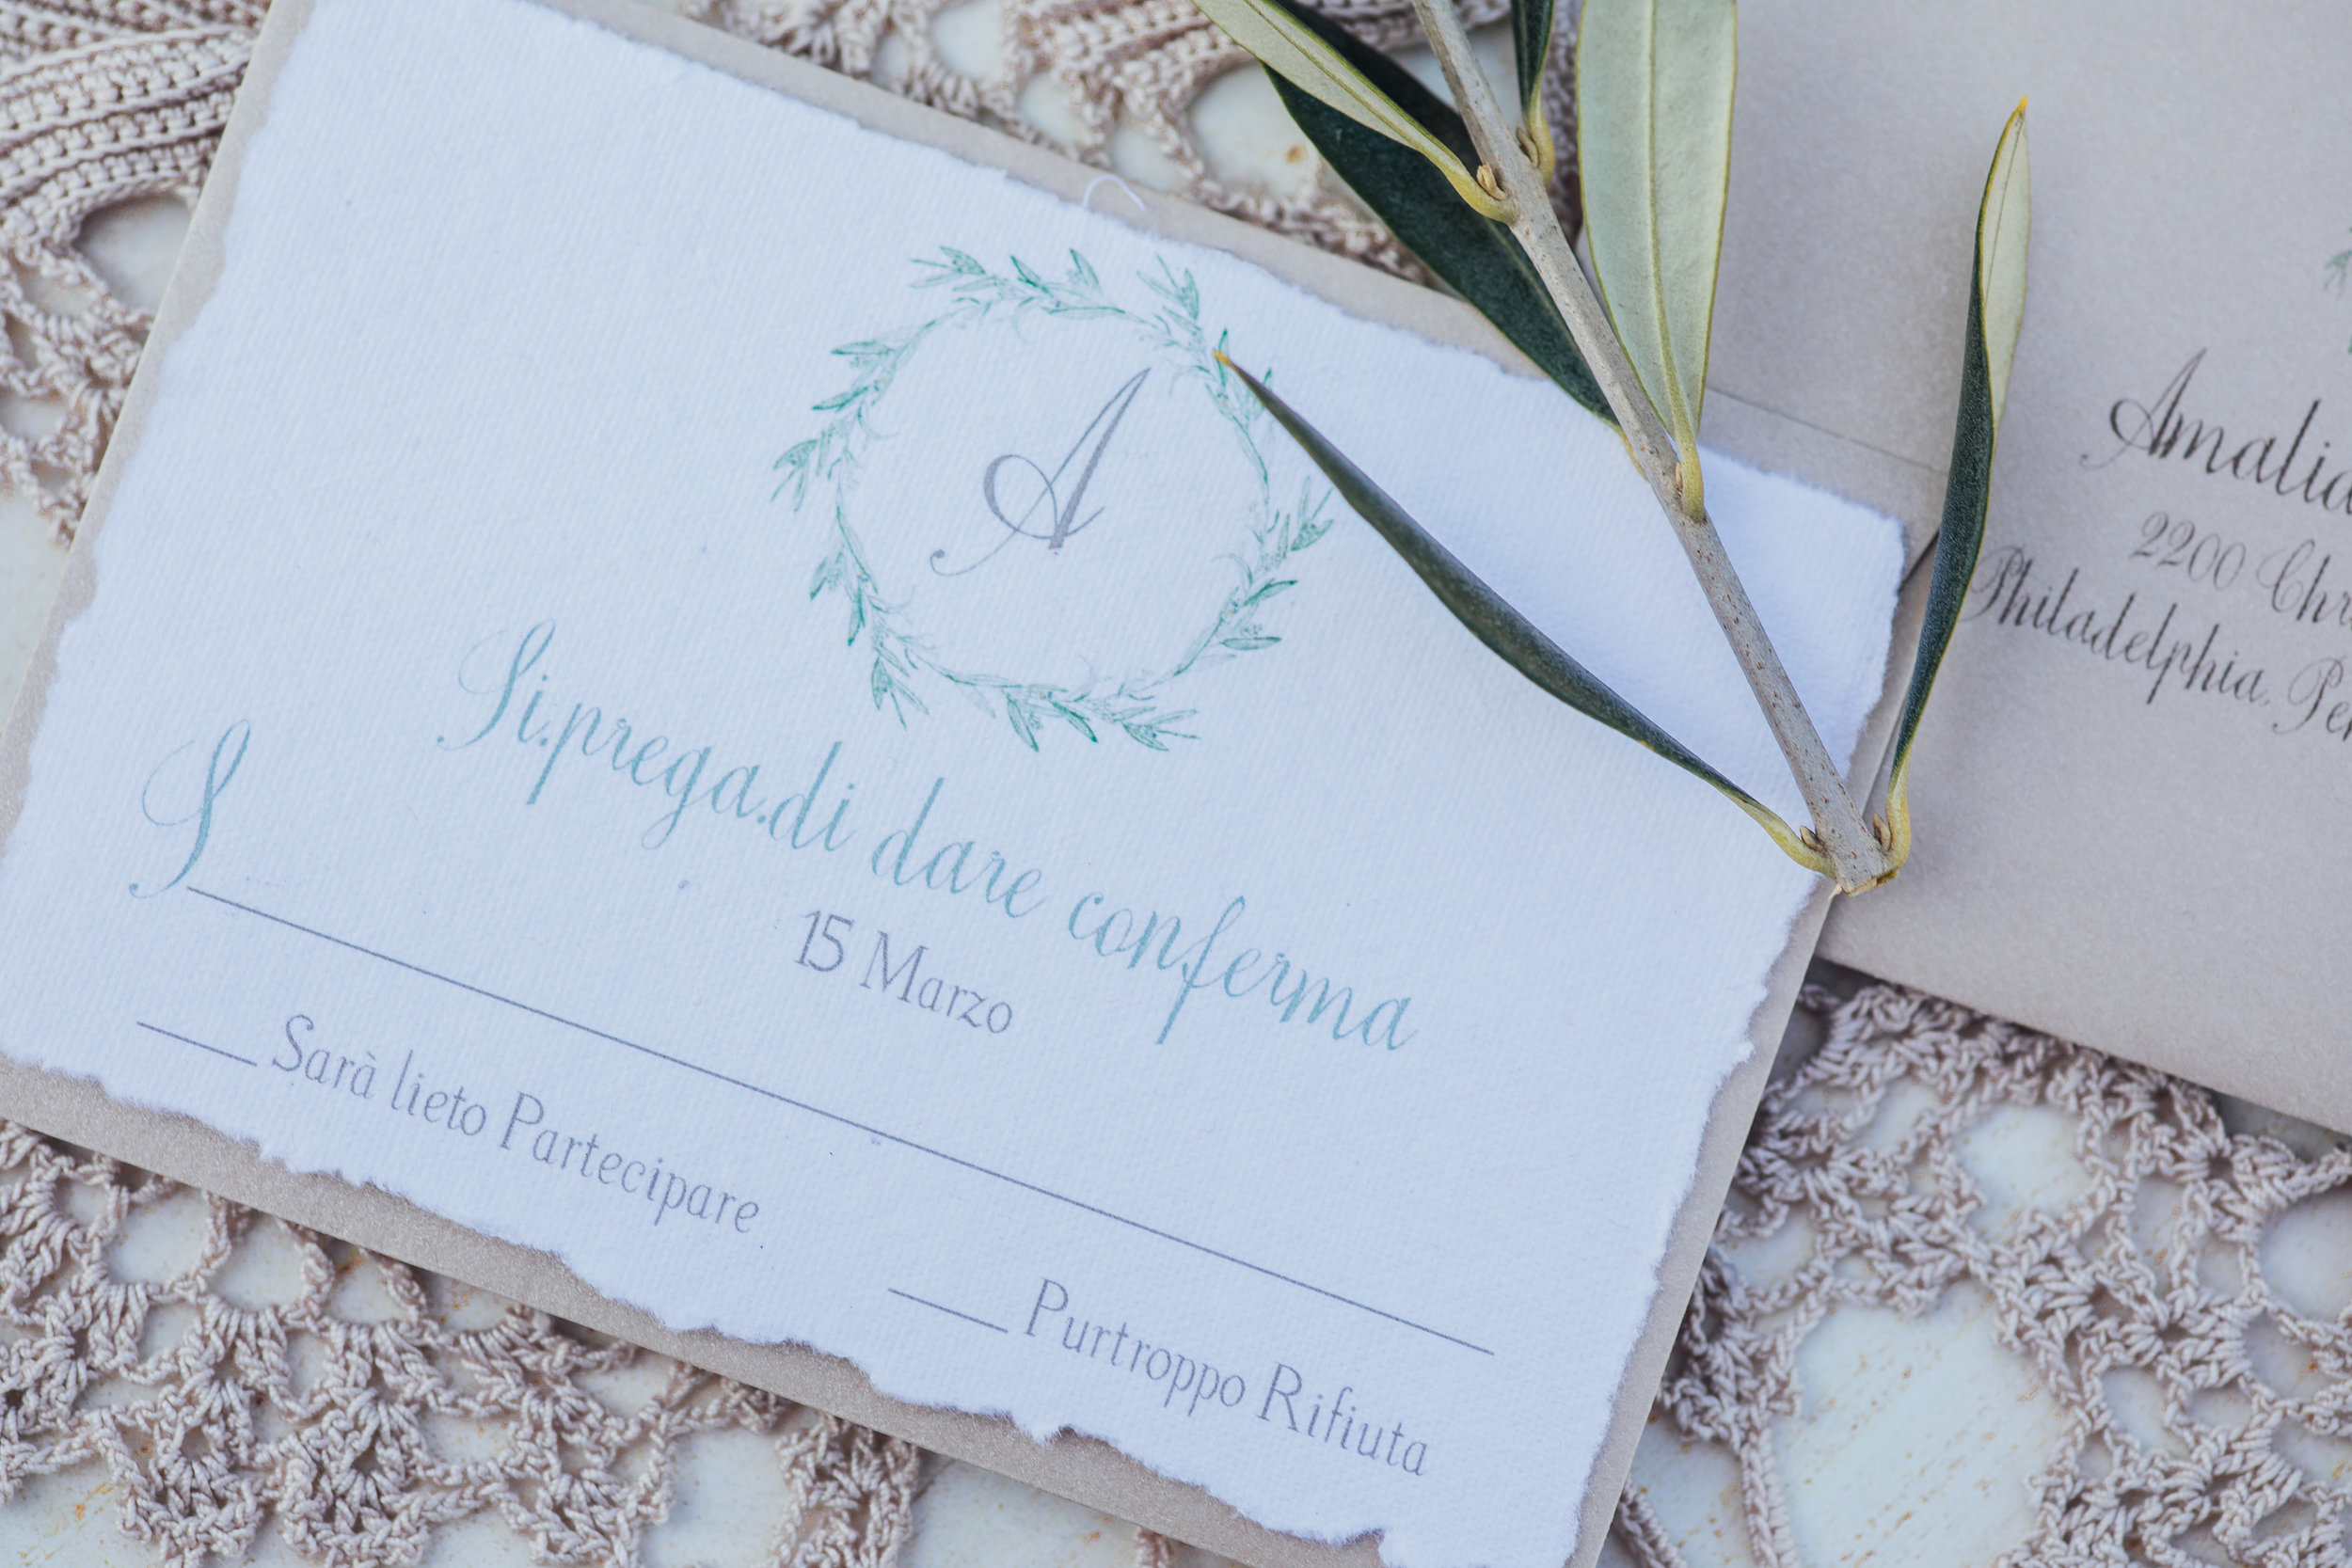 Handmade monogrammed response card from a Lemon Yellow Garden Wedding Styled Shoot in Rome Italy - by Jess Palatucci Photography - as seen on www.BrendasWeddingBlog.com